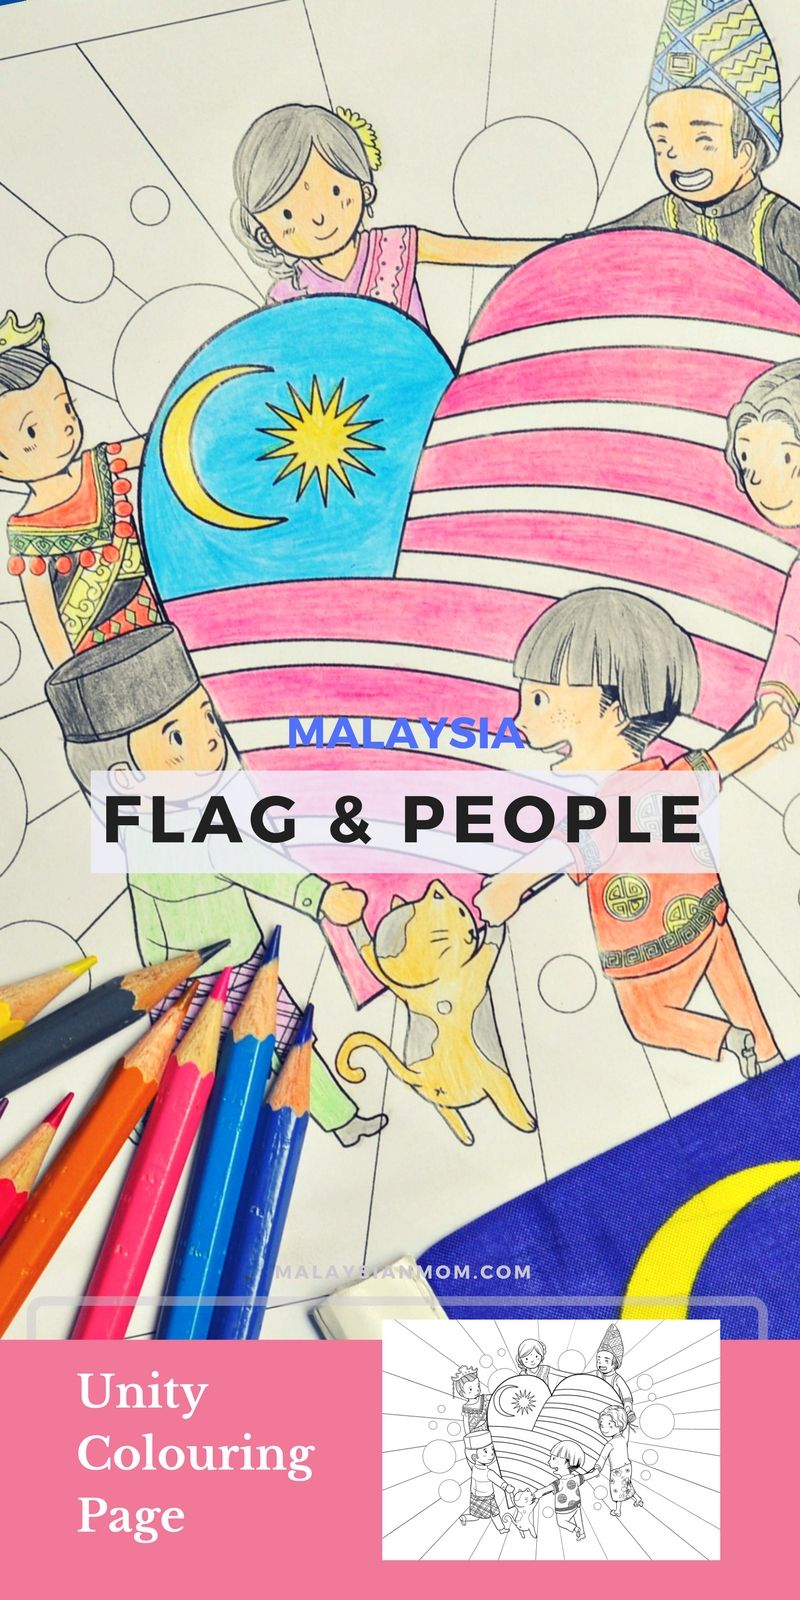 PATRIOTIC COLOURING PAGE MALAYSIA | Free printables, Kids learning ...